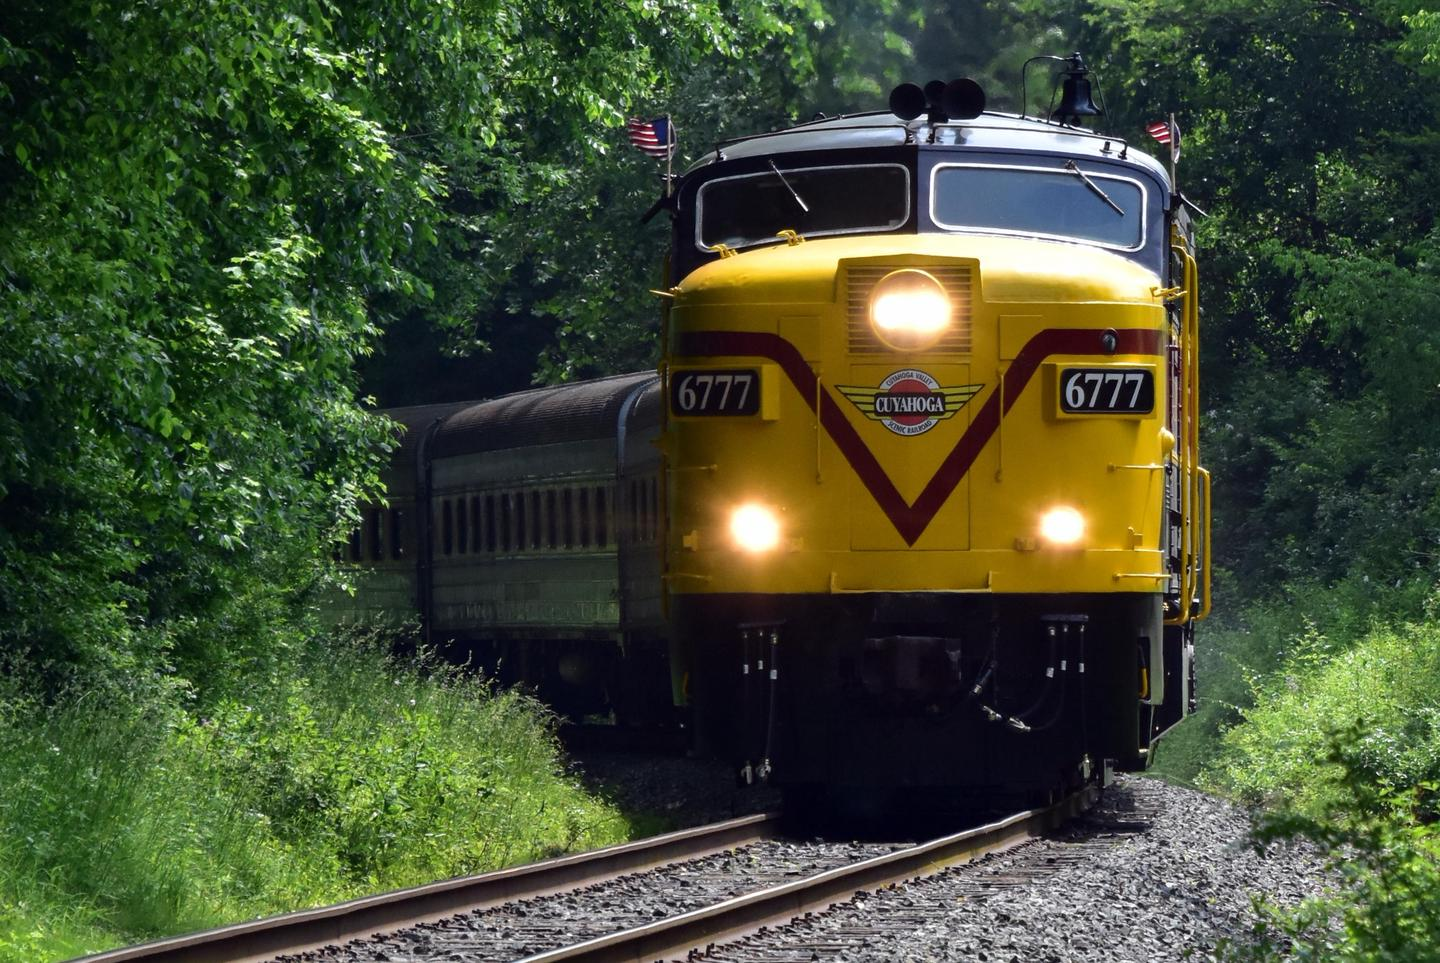 The Cuyahoga Valley Scenic RailroadCVSR Engine 6777 motors down the tracks.